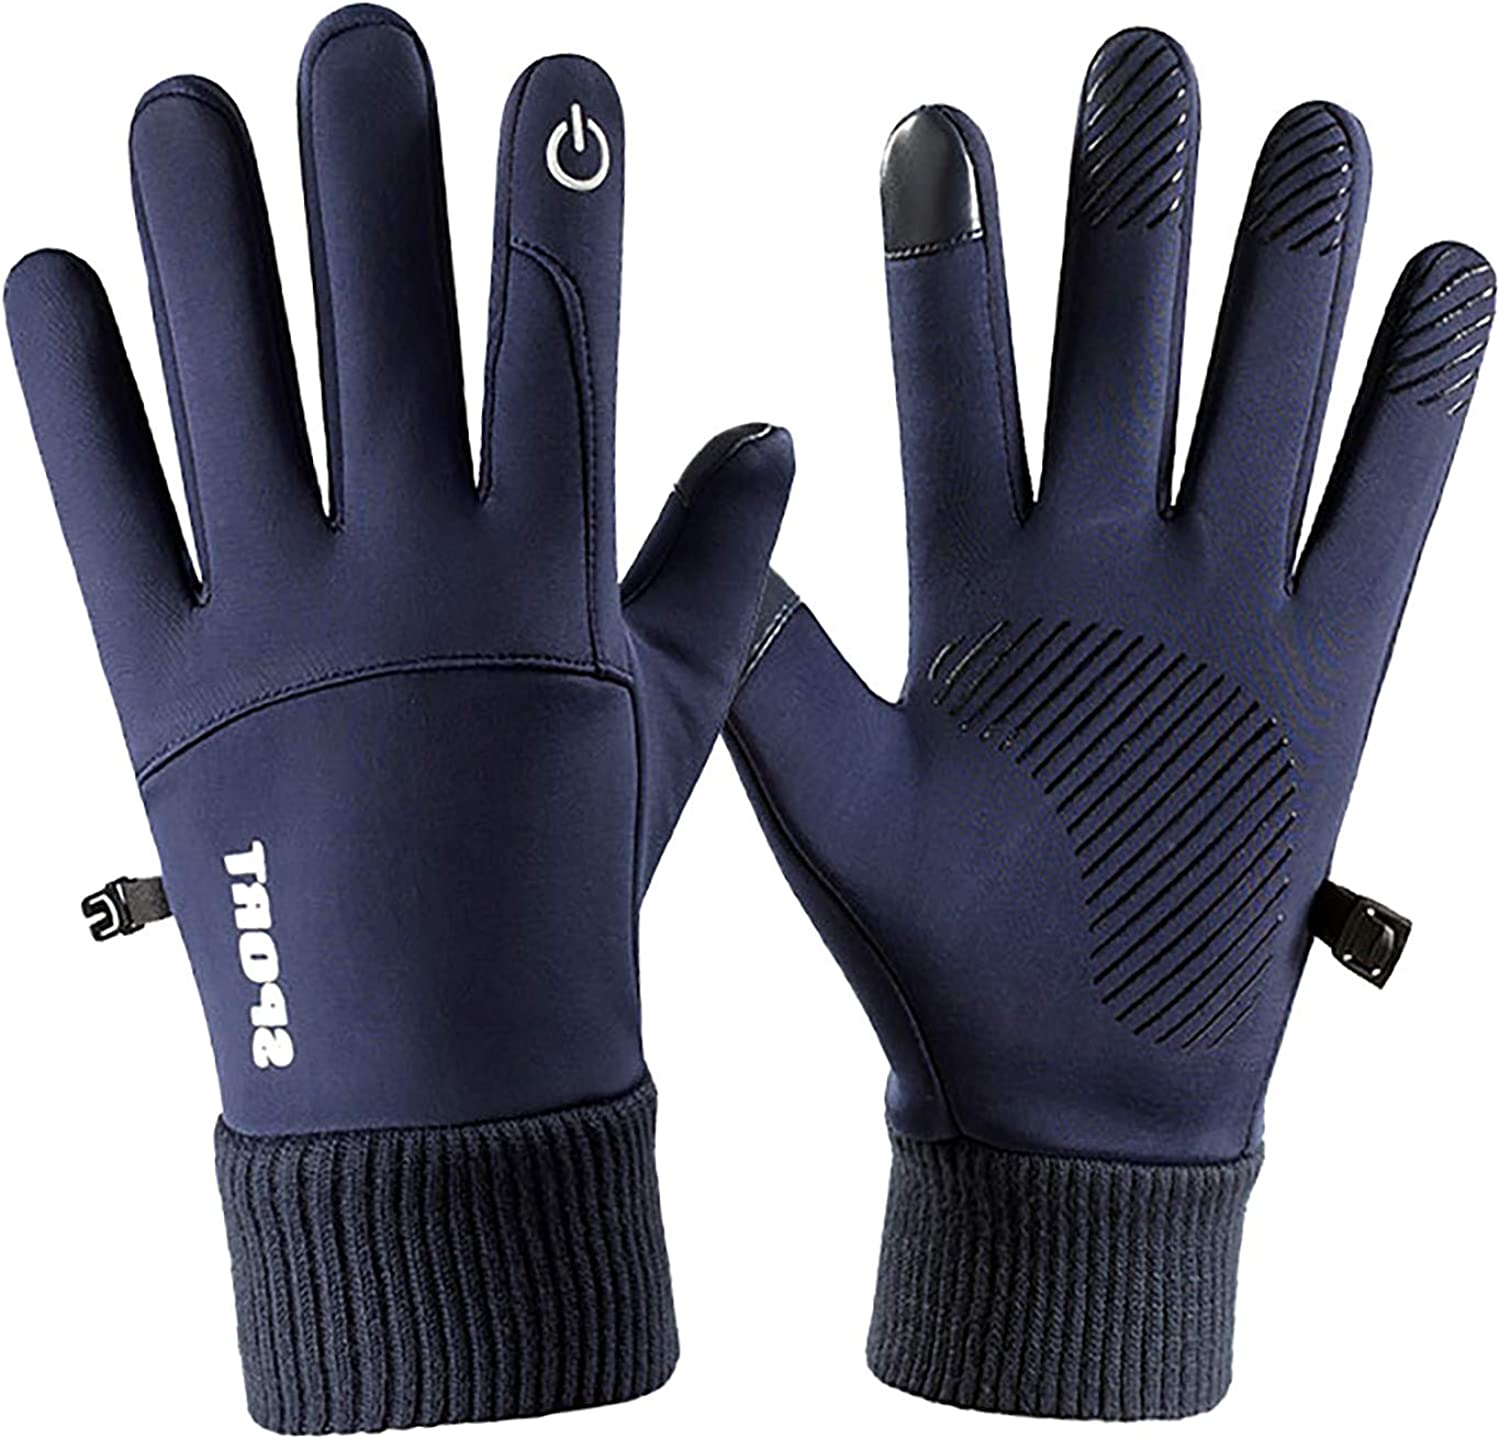 FACAIAFALO Winter Knits Gloves Snowing Unisex Touchscreen Texting Anti-Slip Fingertips Elastic Thermal Outfits